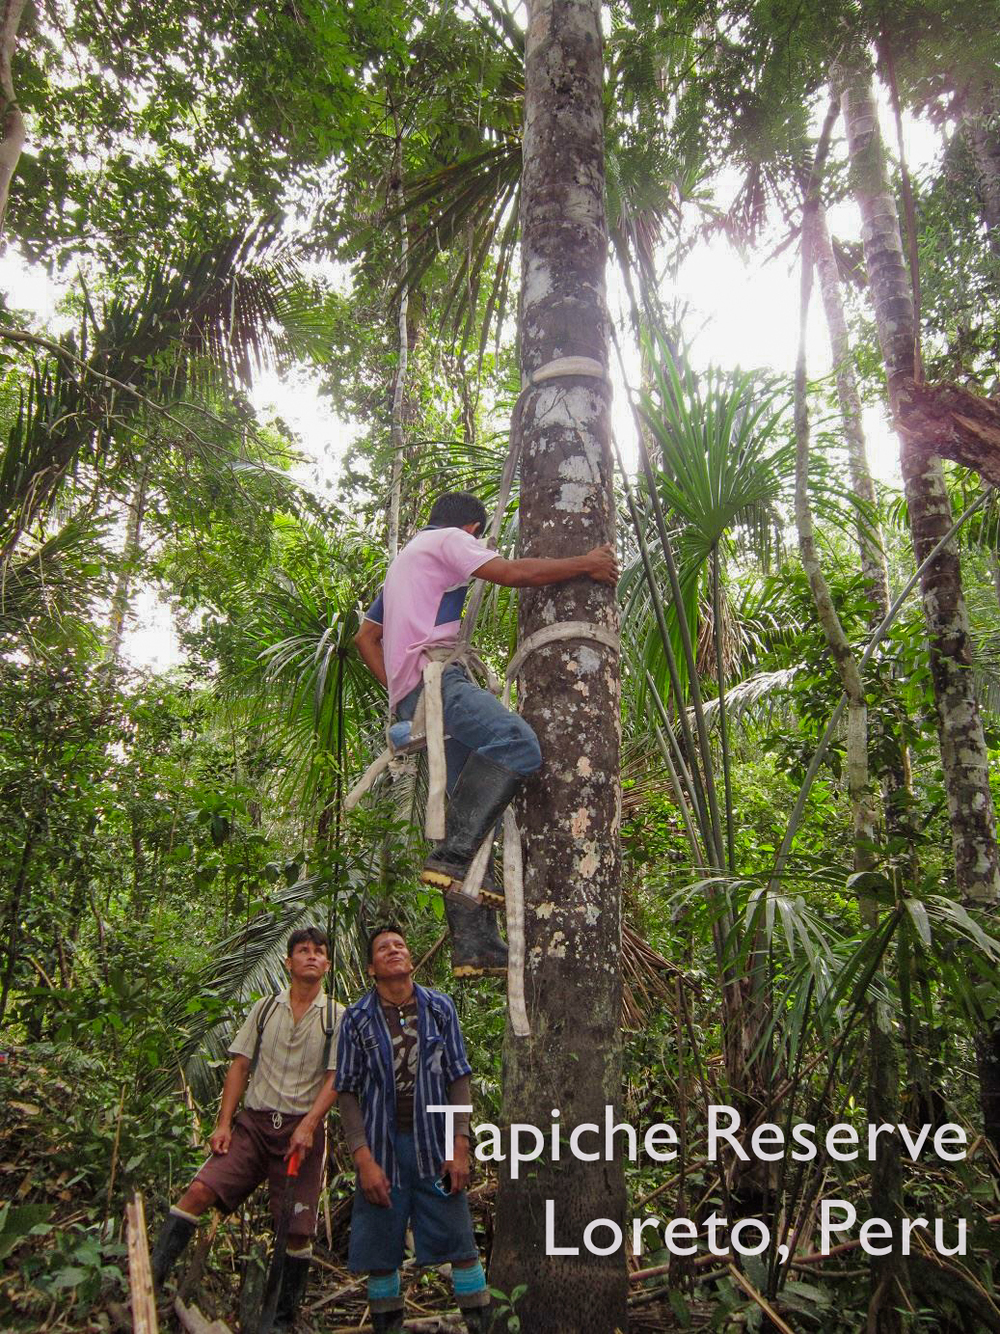 Taking turns climbing an agauje palm tree, Tapiche Reserve Jungle, Peru